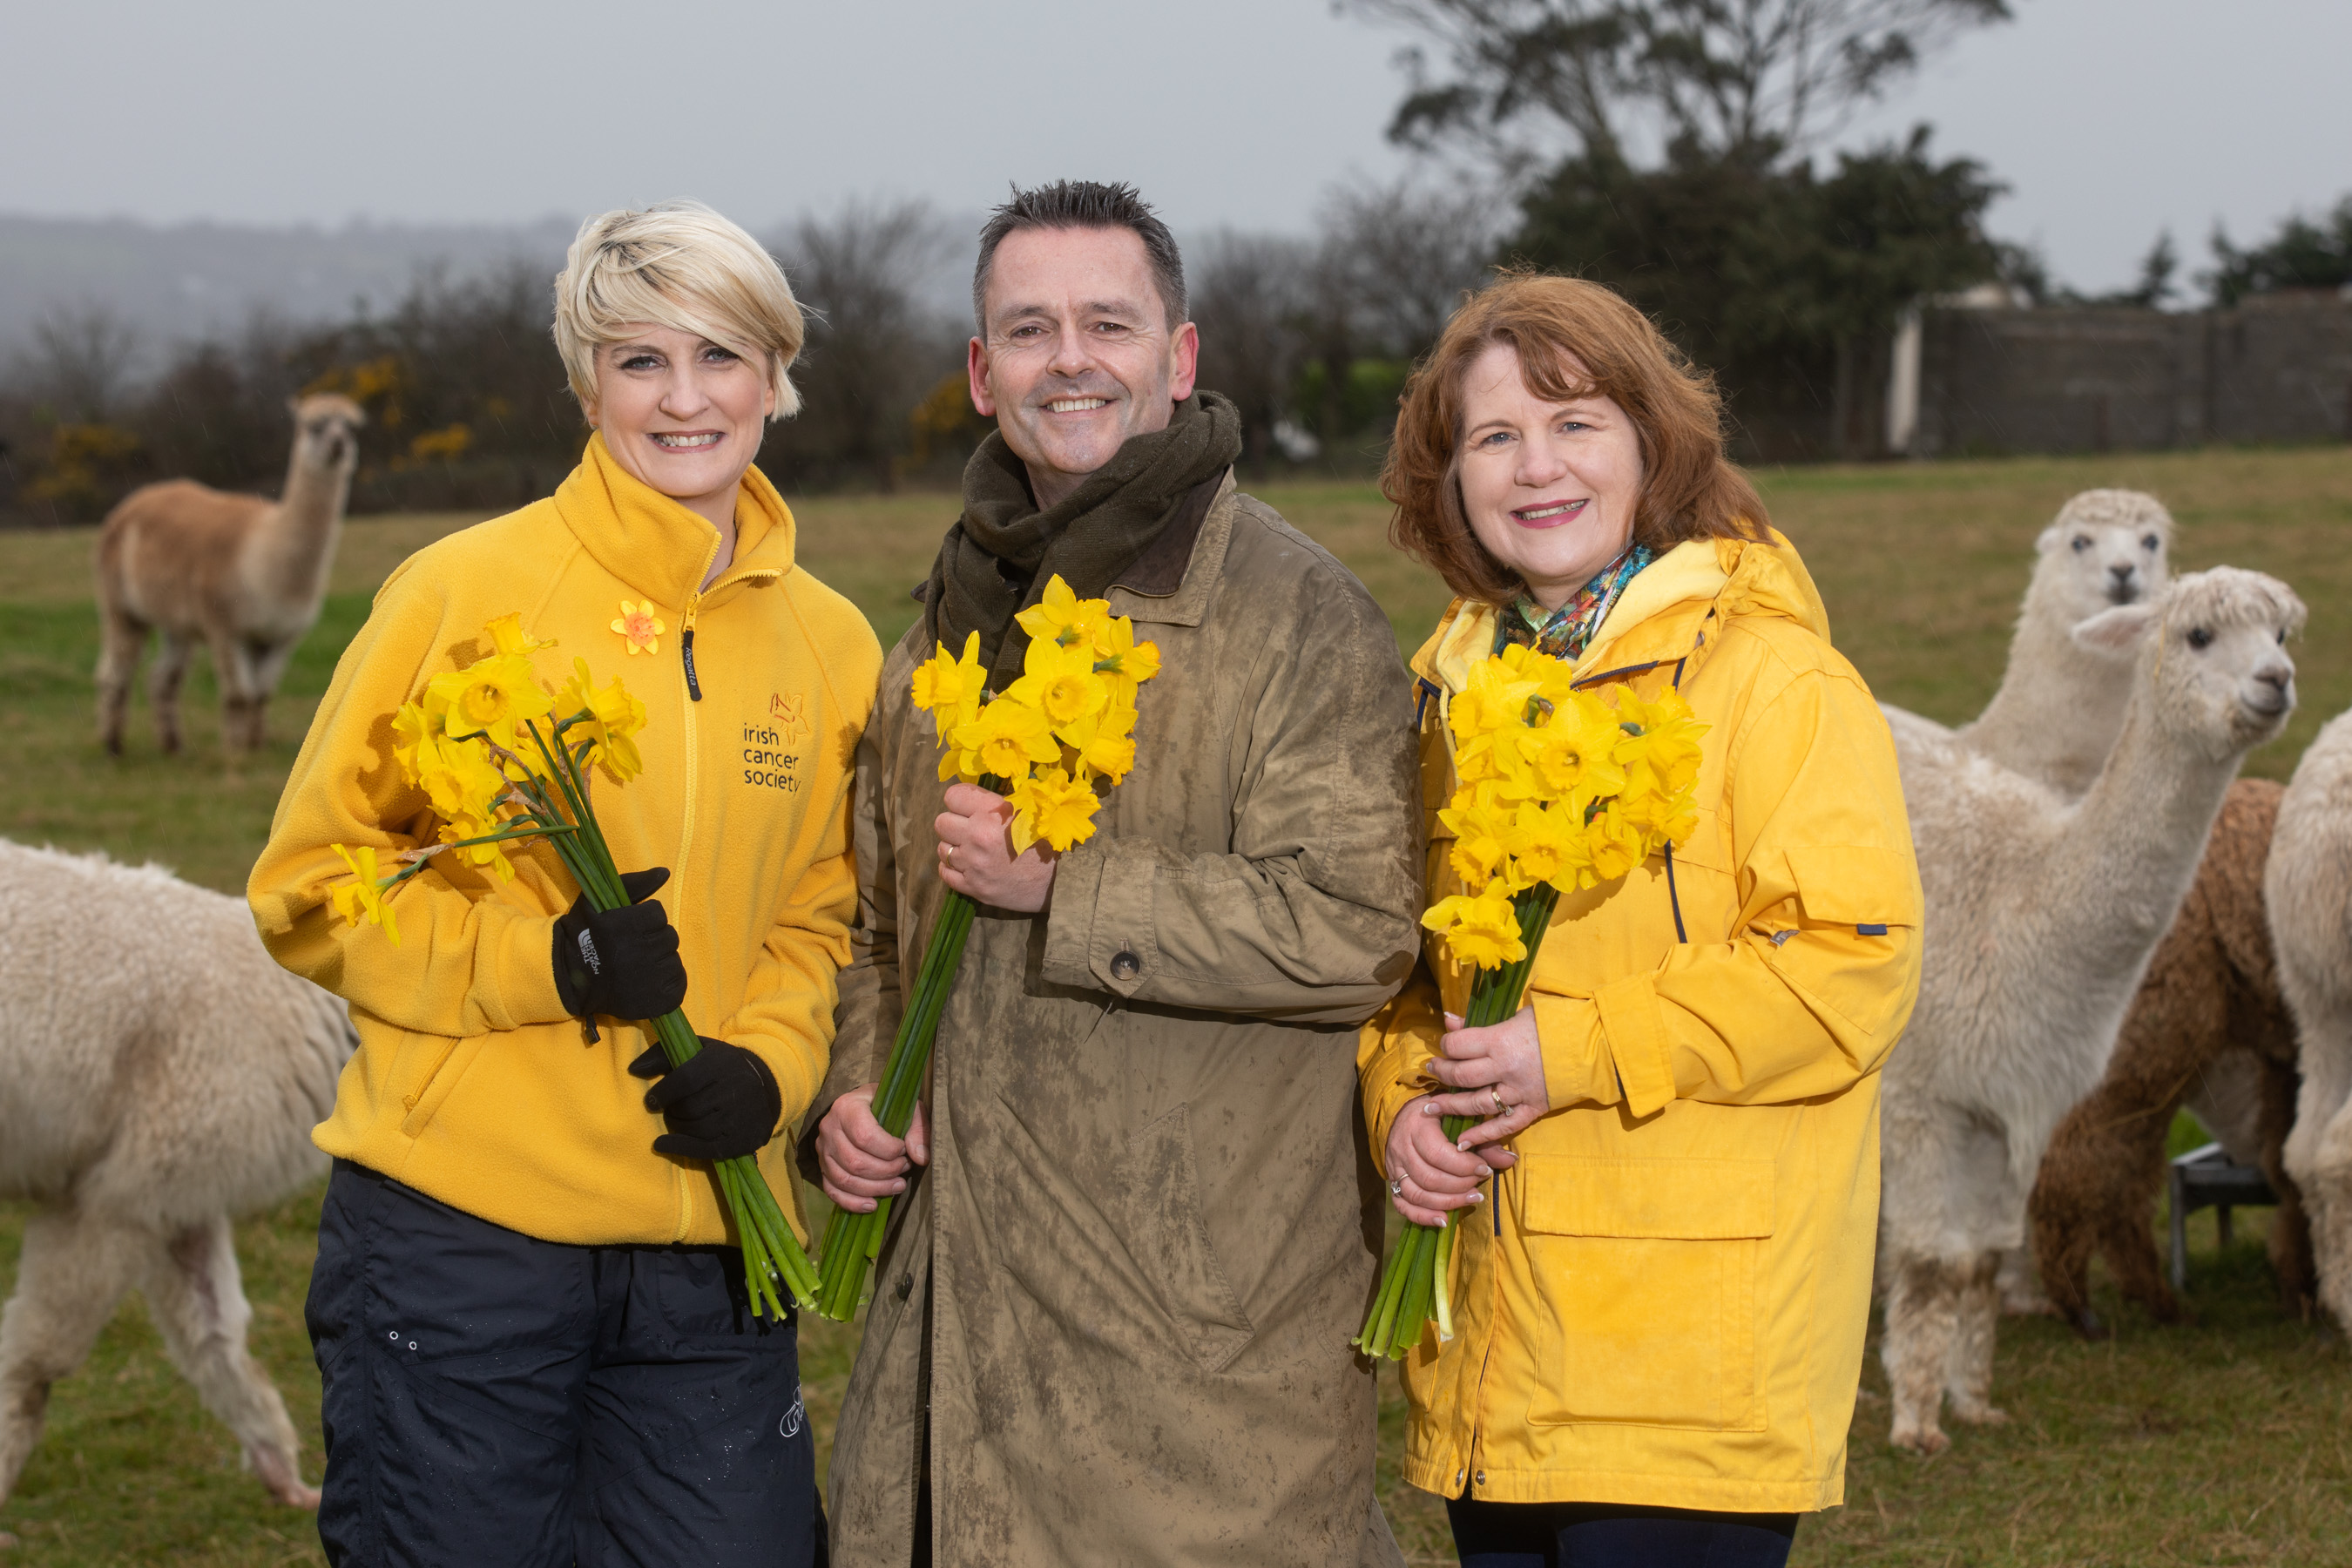 Aengus MacGrianna calls on businesses in Offaly to help 'alpaca' punch to cancer on Daffodil Day